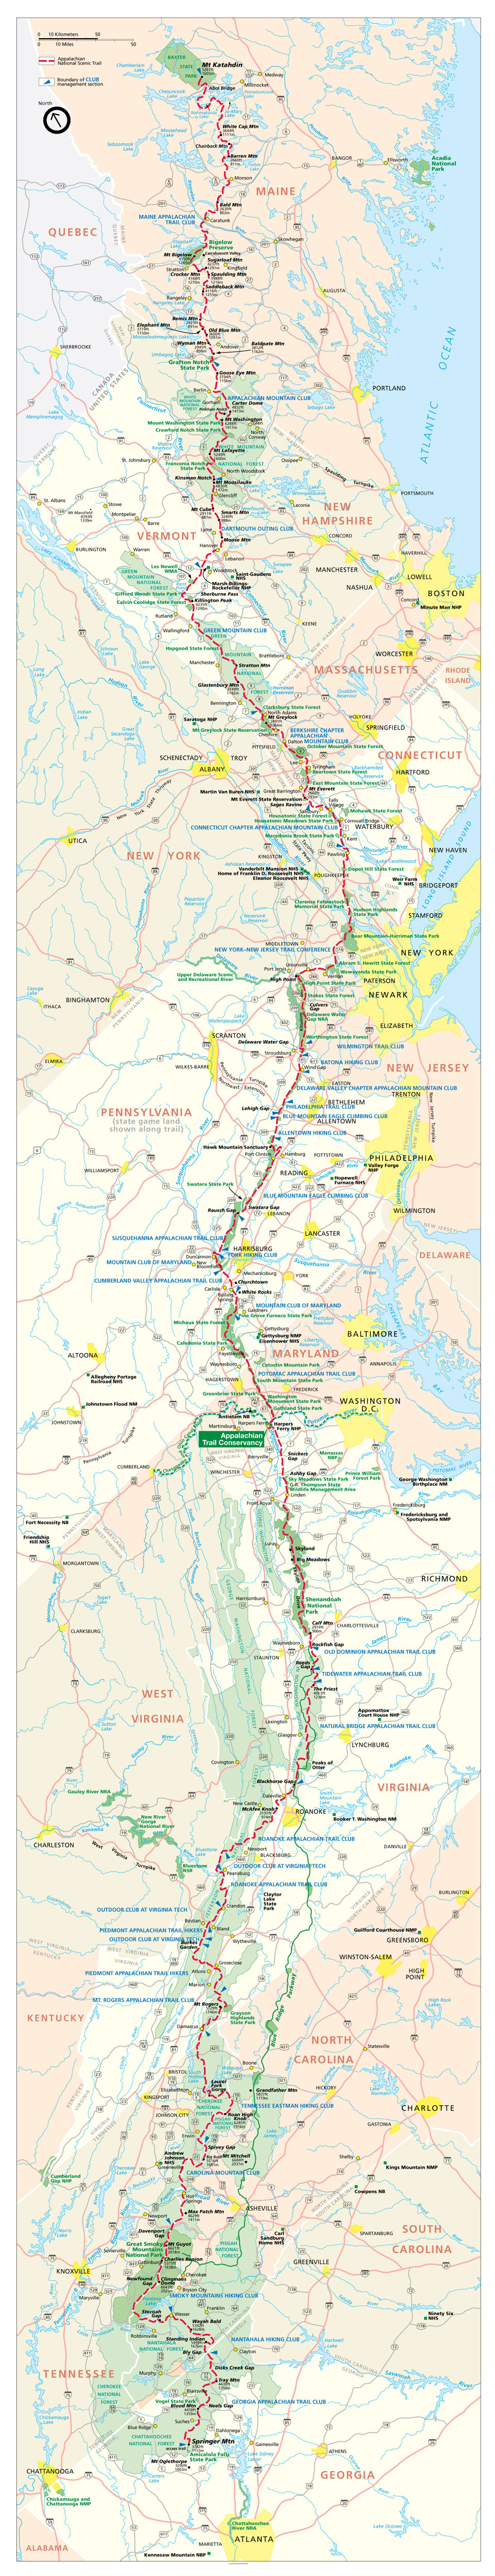 Appalachian Trail Map From Georgia to Maine ...